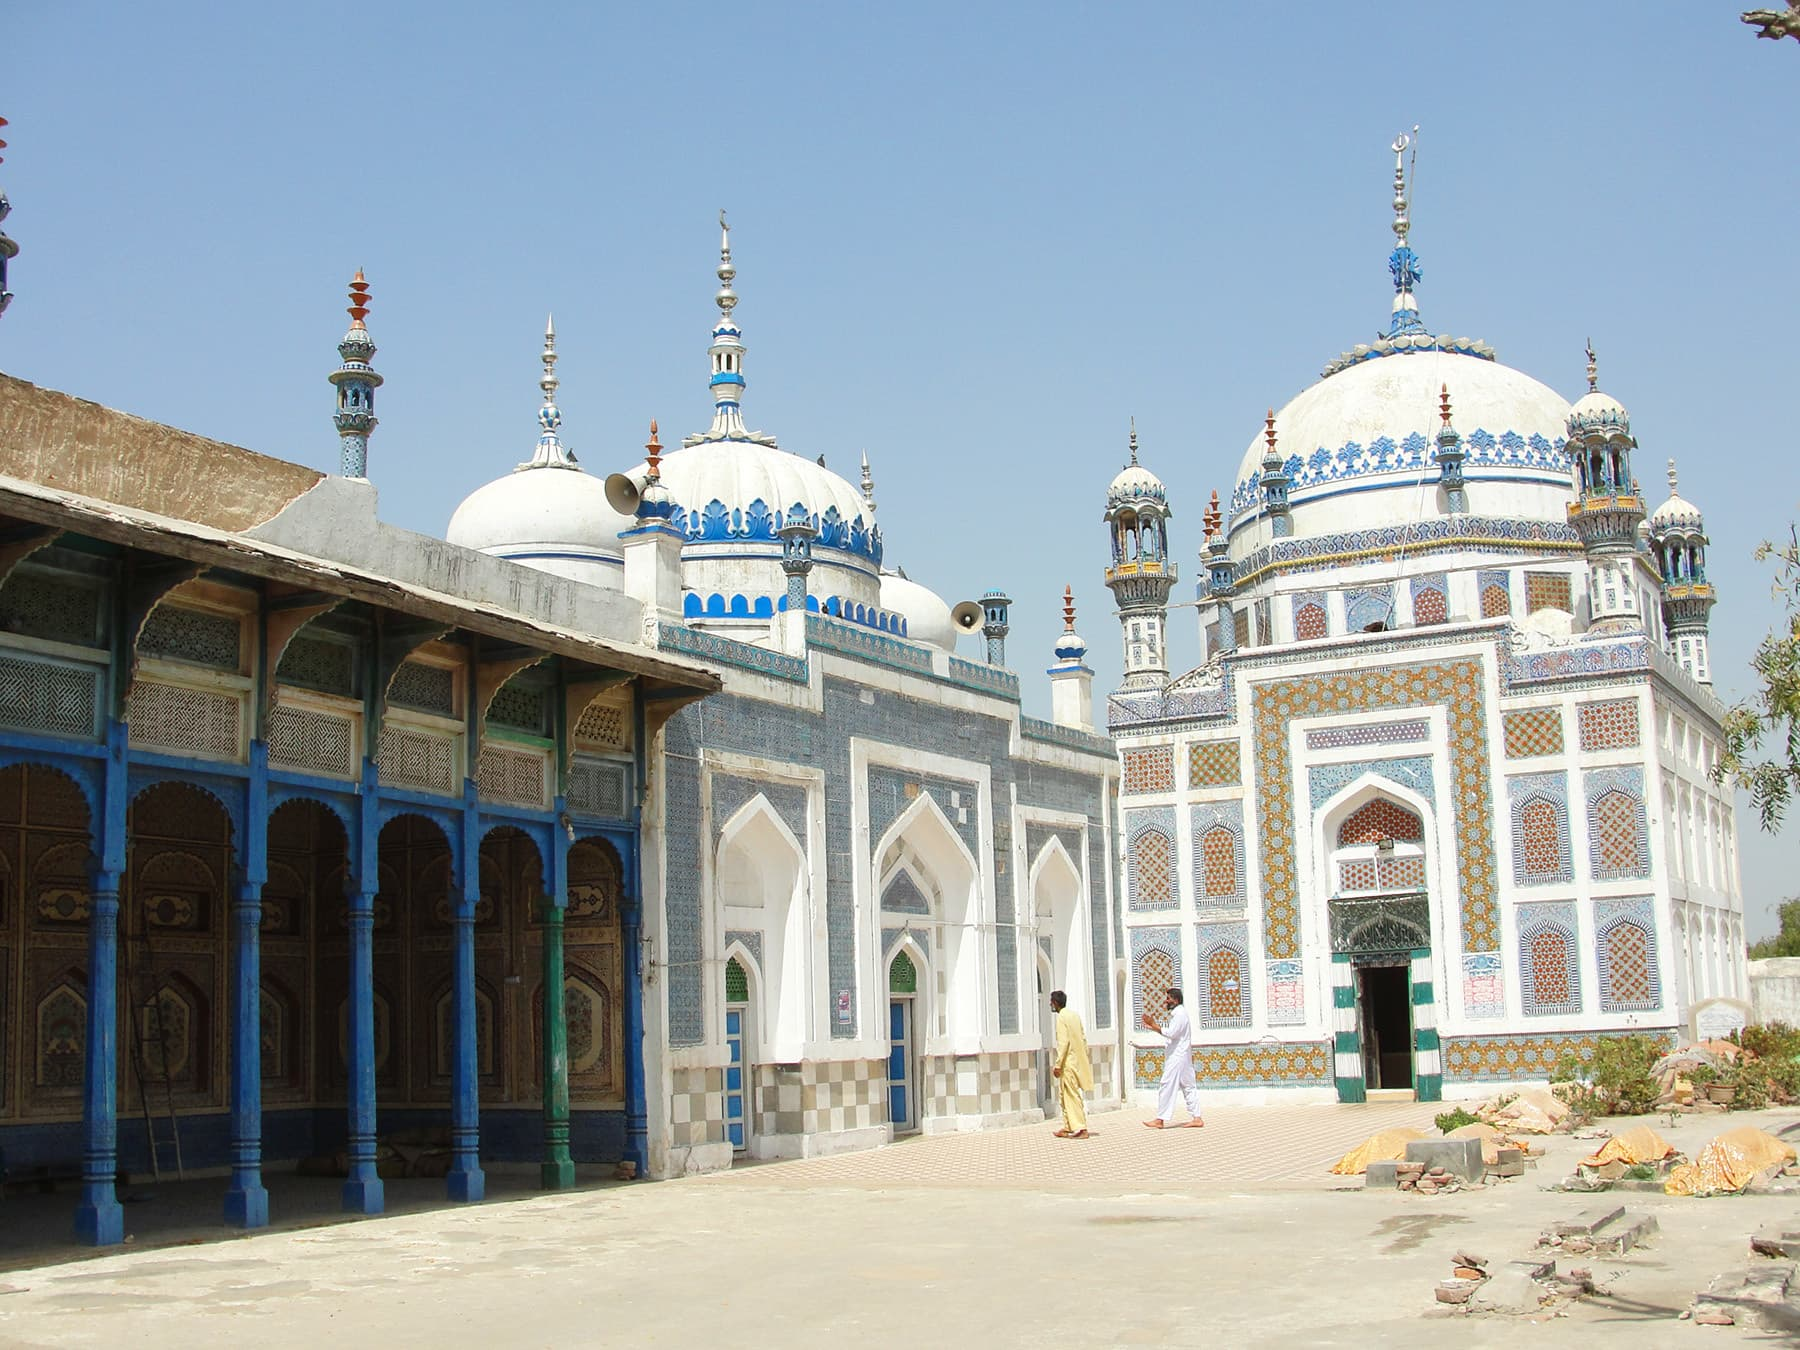 A view of the shrine and the mosques.